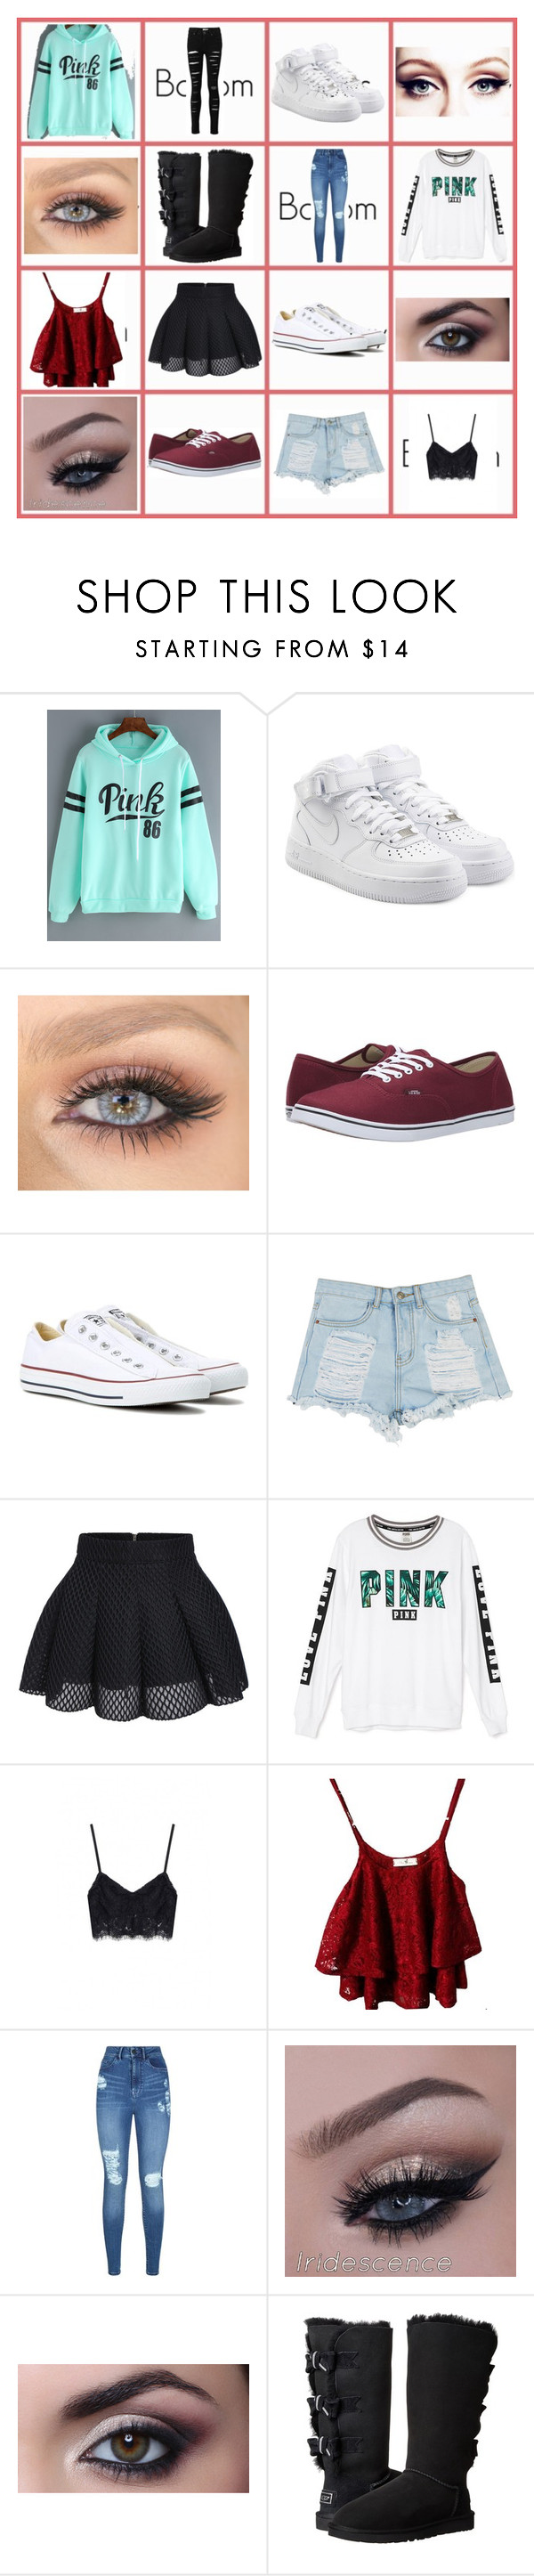 """""""cute outfits for school or concerts"""" by gingger8 on Polyvore featuring NIKE, Vans, Converse, Victoria's Secret, Lipsy, UGG Australia, school and concerts"""